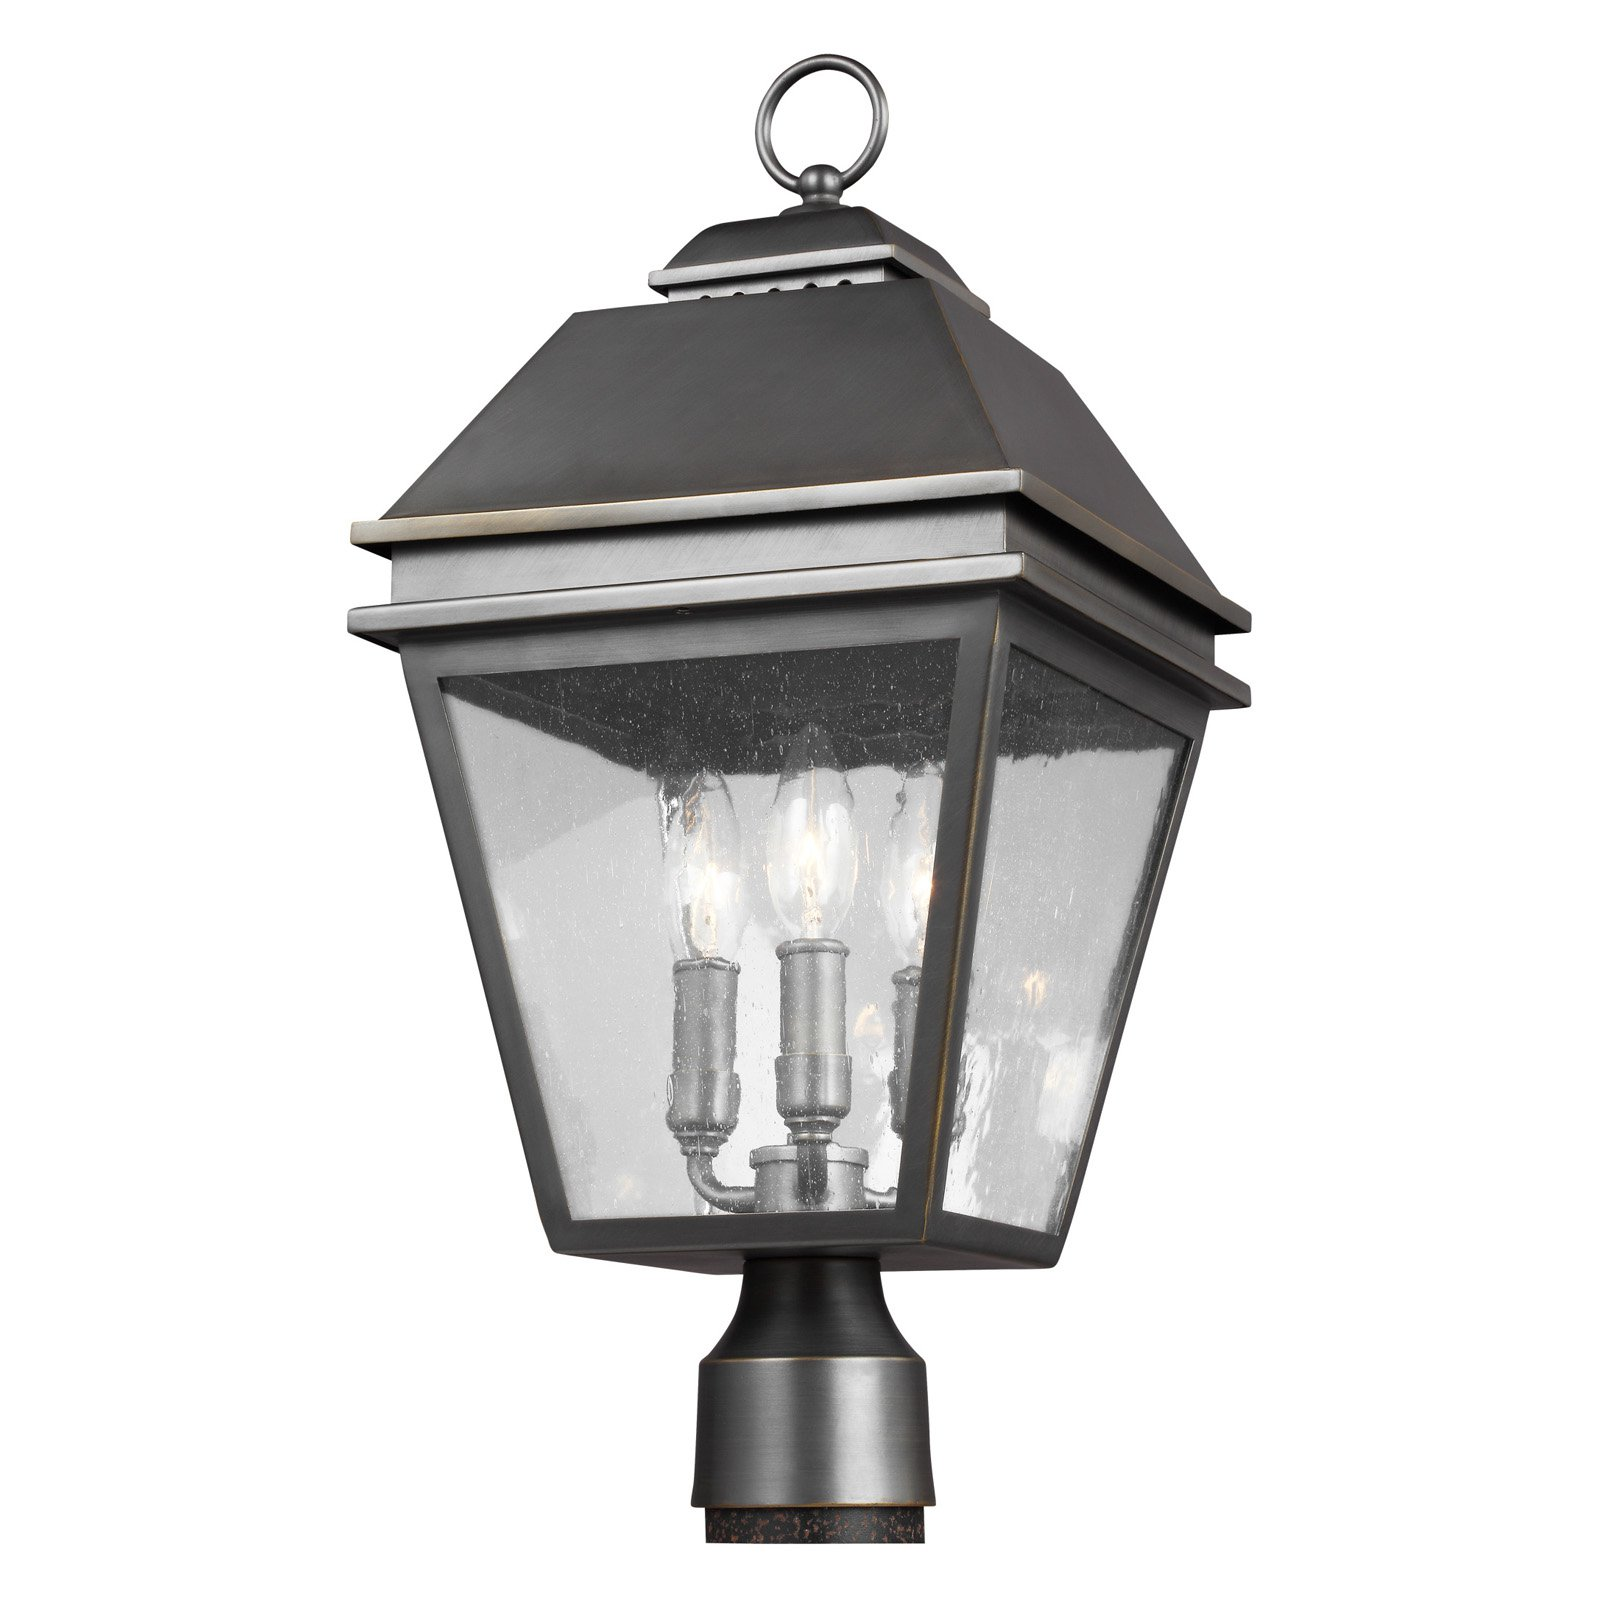 Feiss Herald Outdoor Post Lantern by Feiss